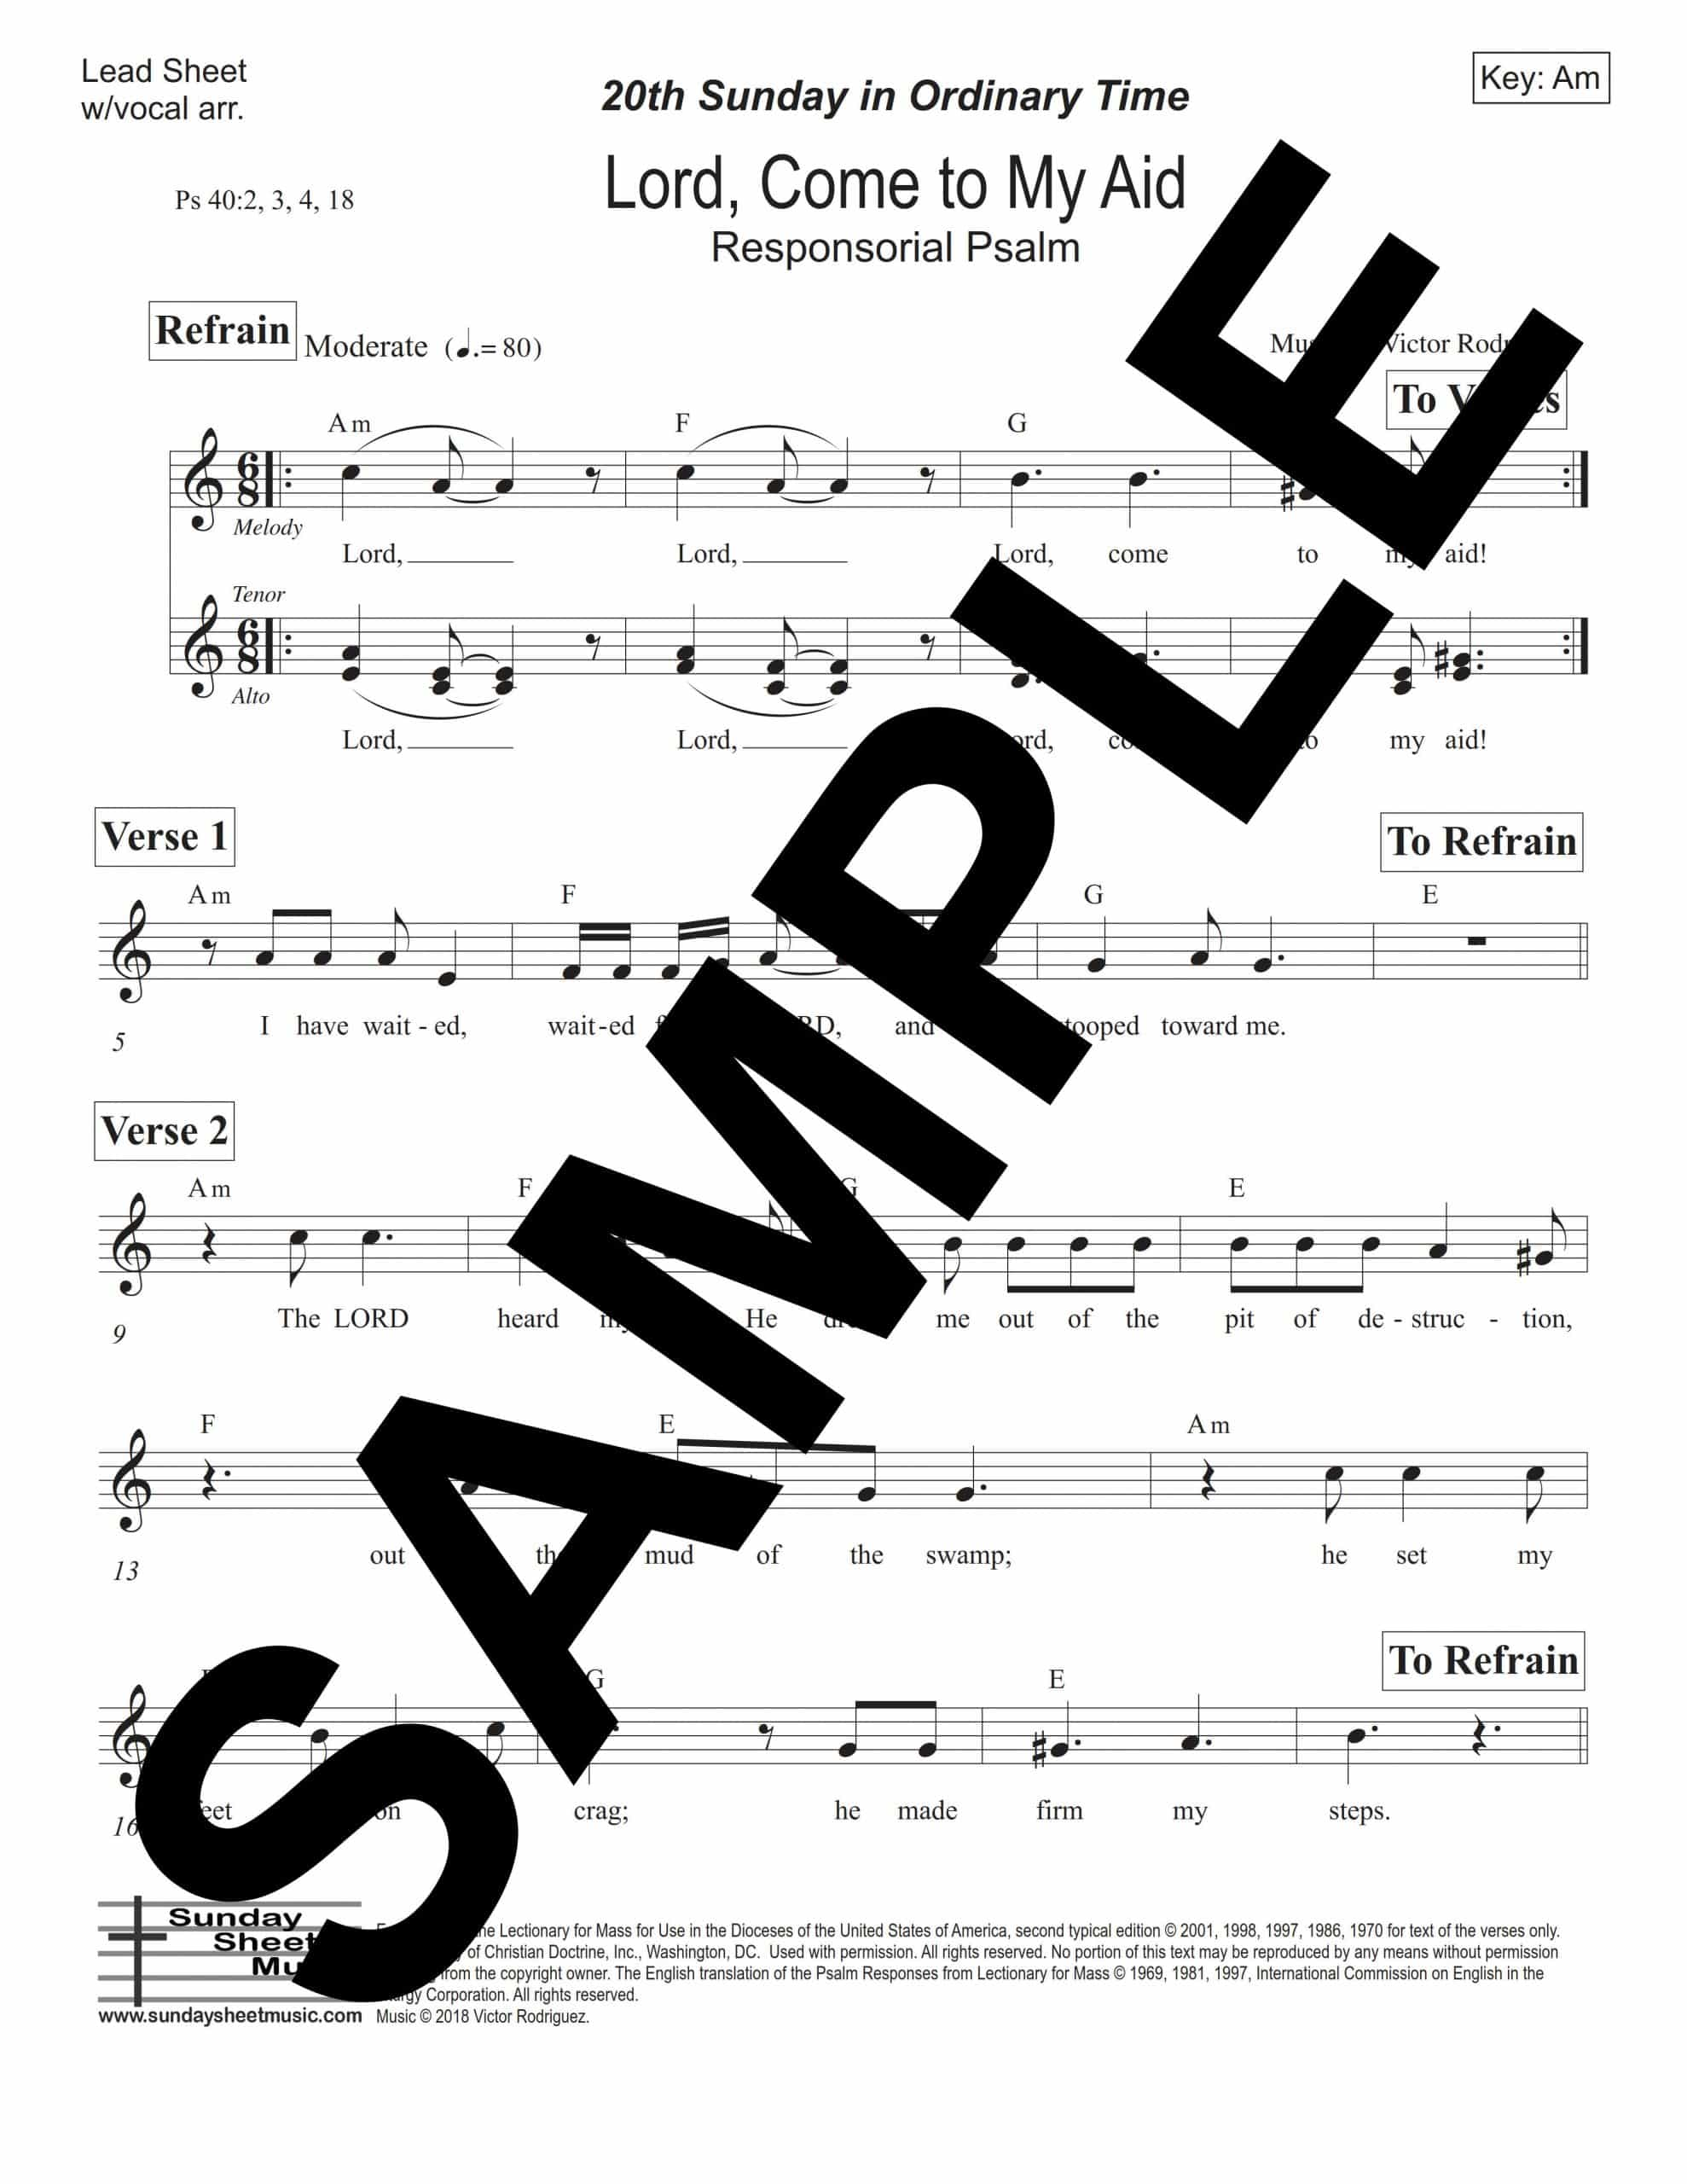 Psalm 40 Lord Come to My Aid Rodriguez Sample Lead Sheet w vocal arr scaled